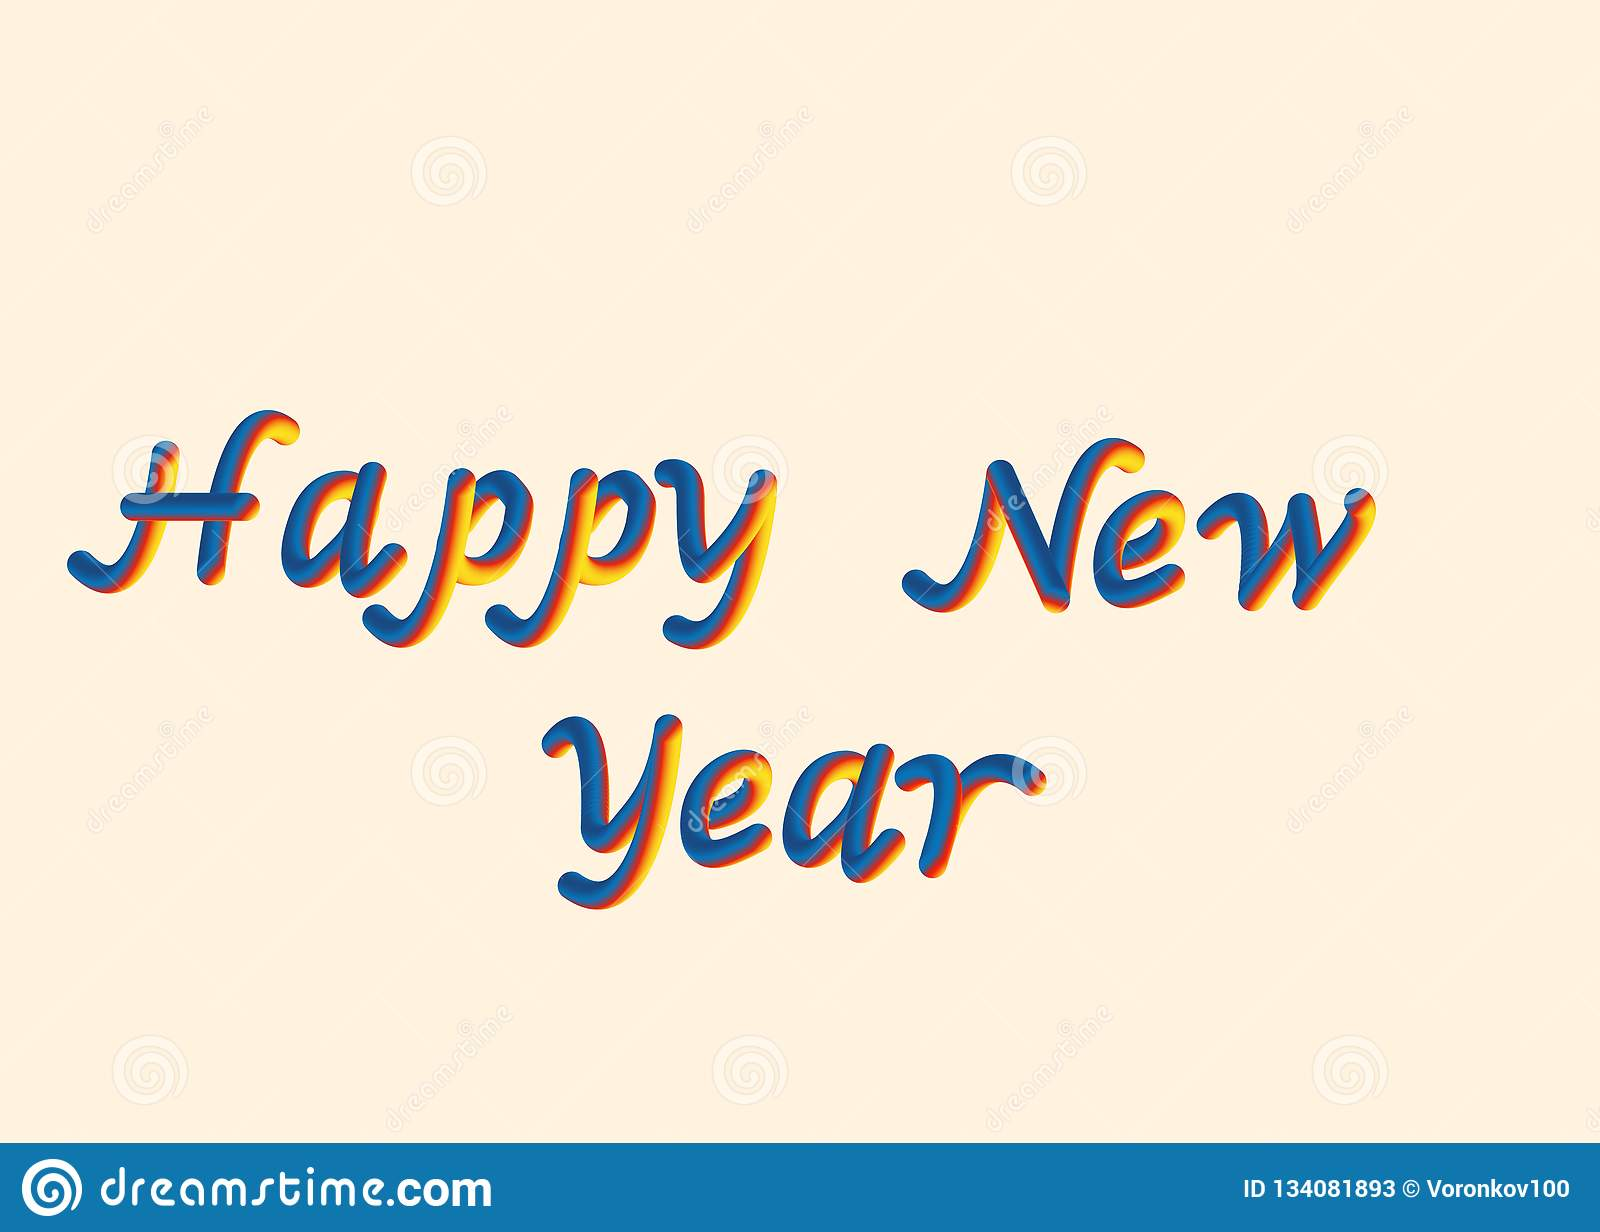 Vector illustration of happy New year font with letters. 3D lettering style rendering bubble font. Color blue yellow red.